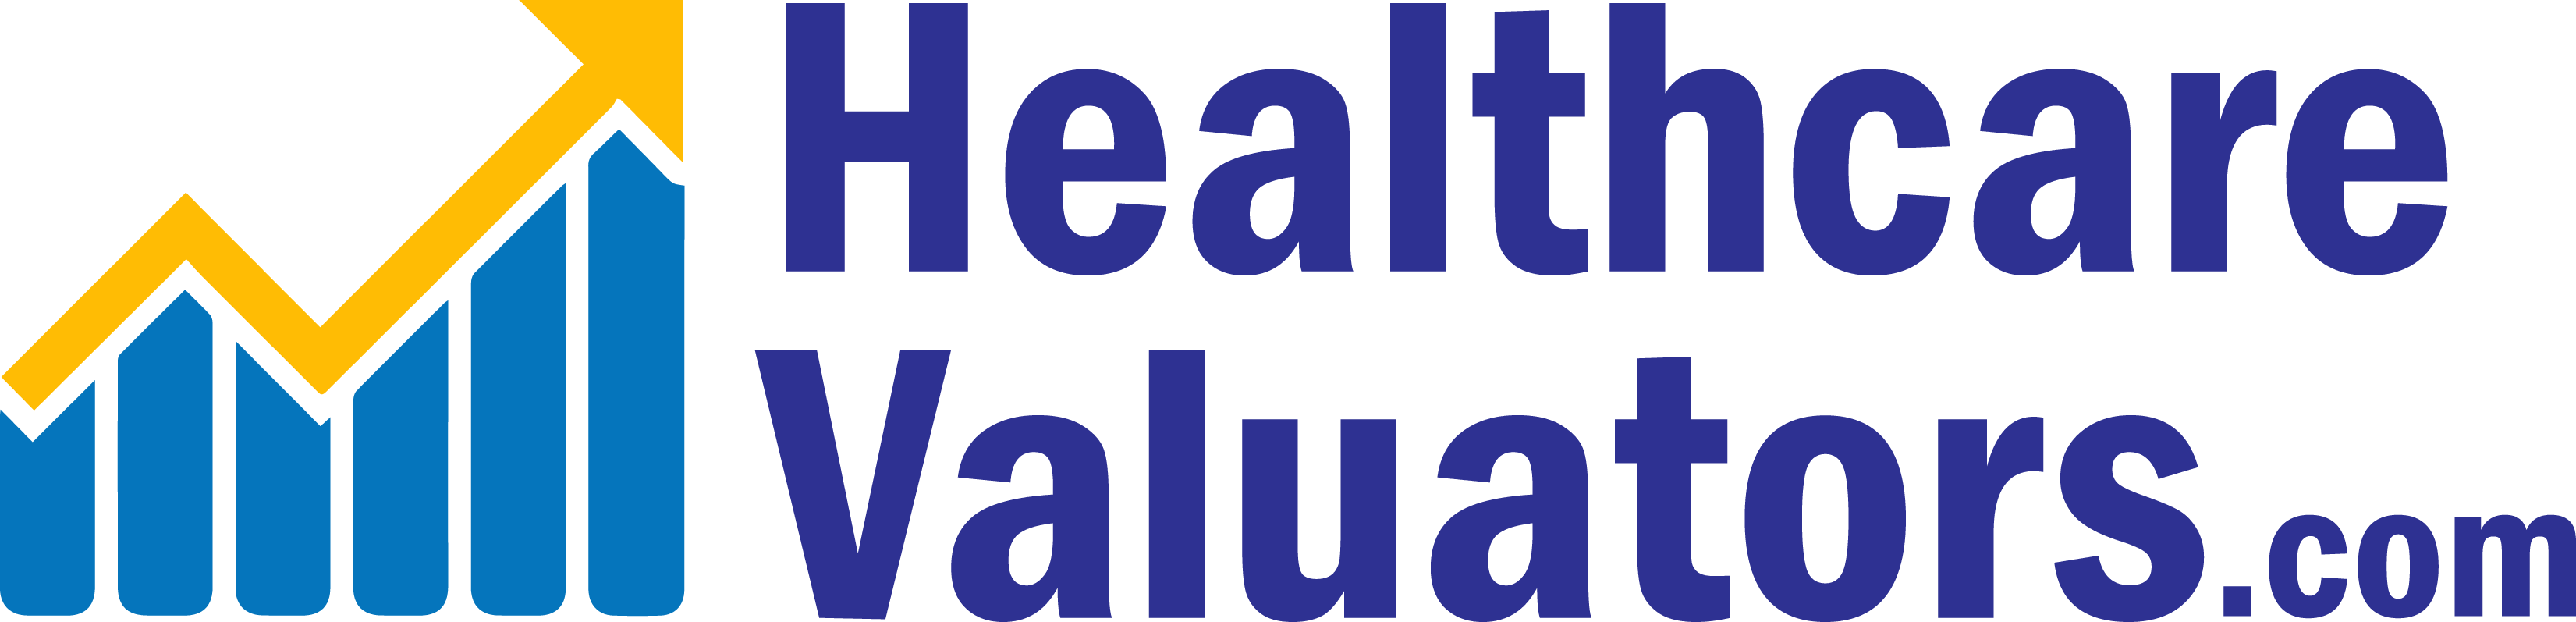 Healthcare Valuators Logo